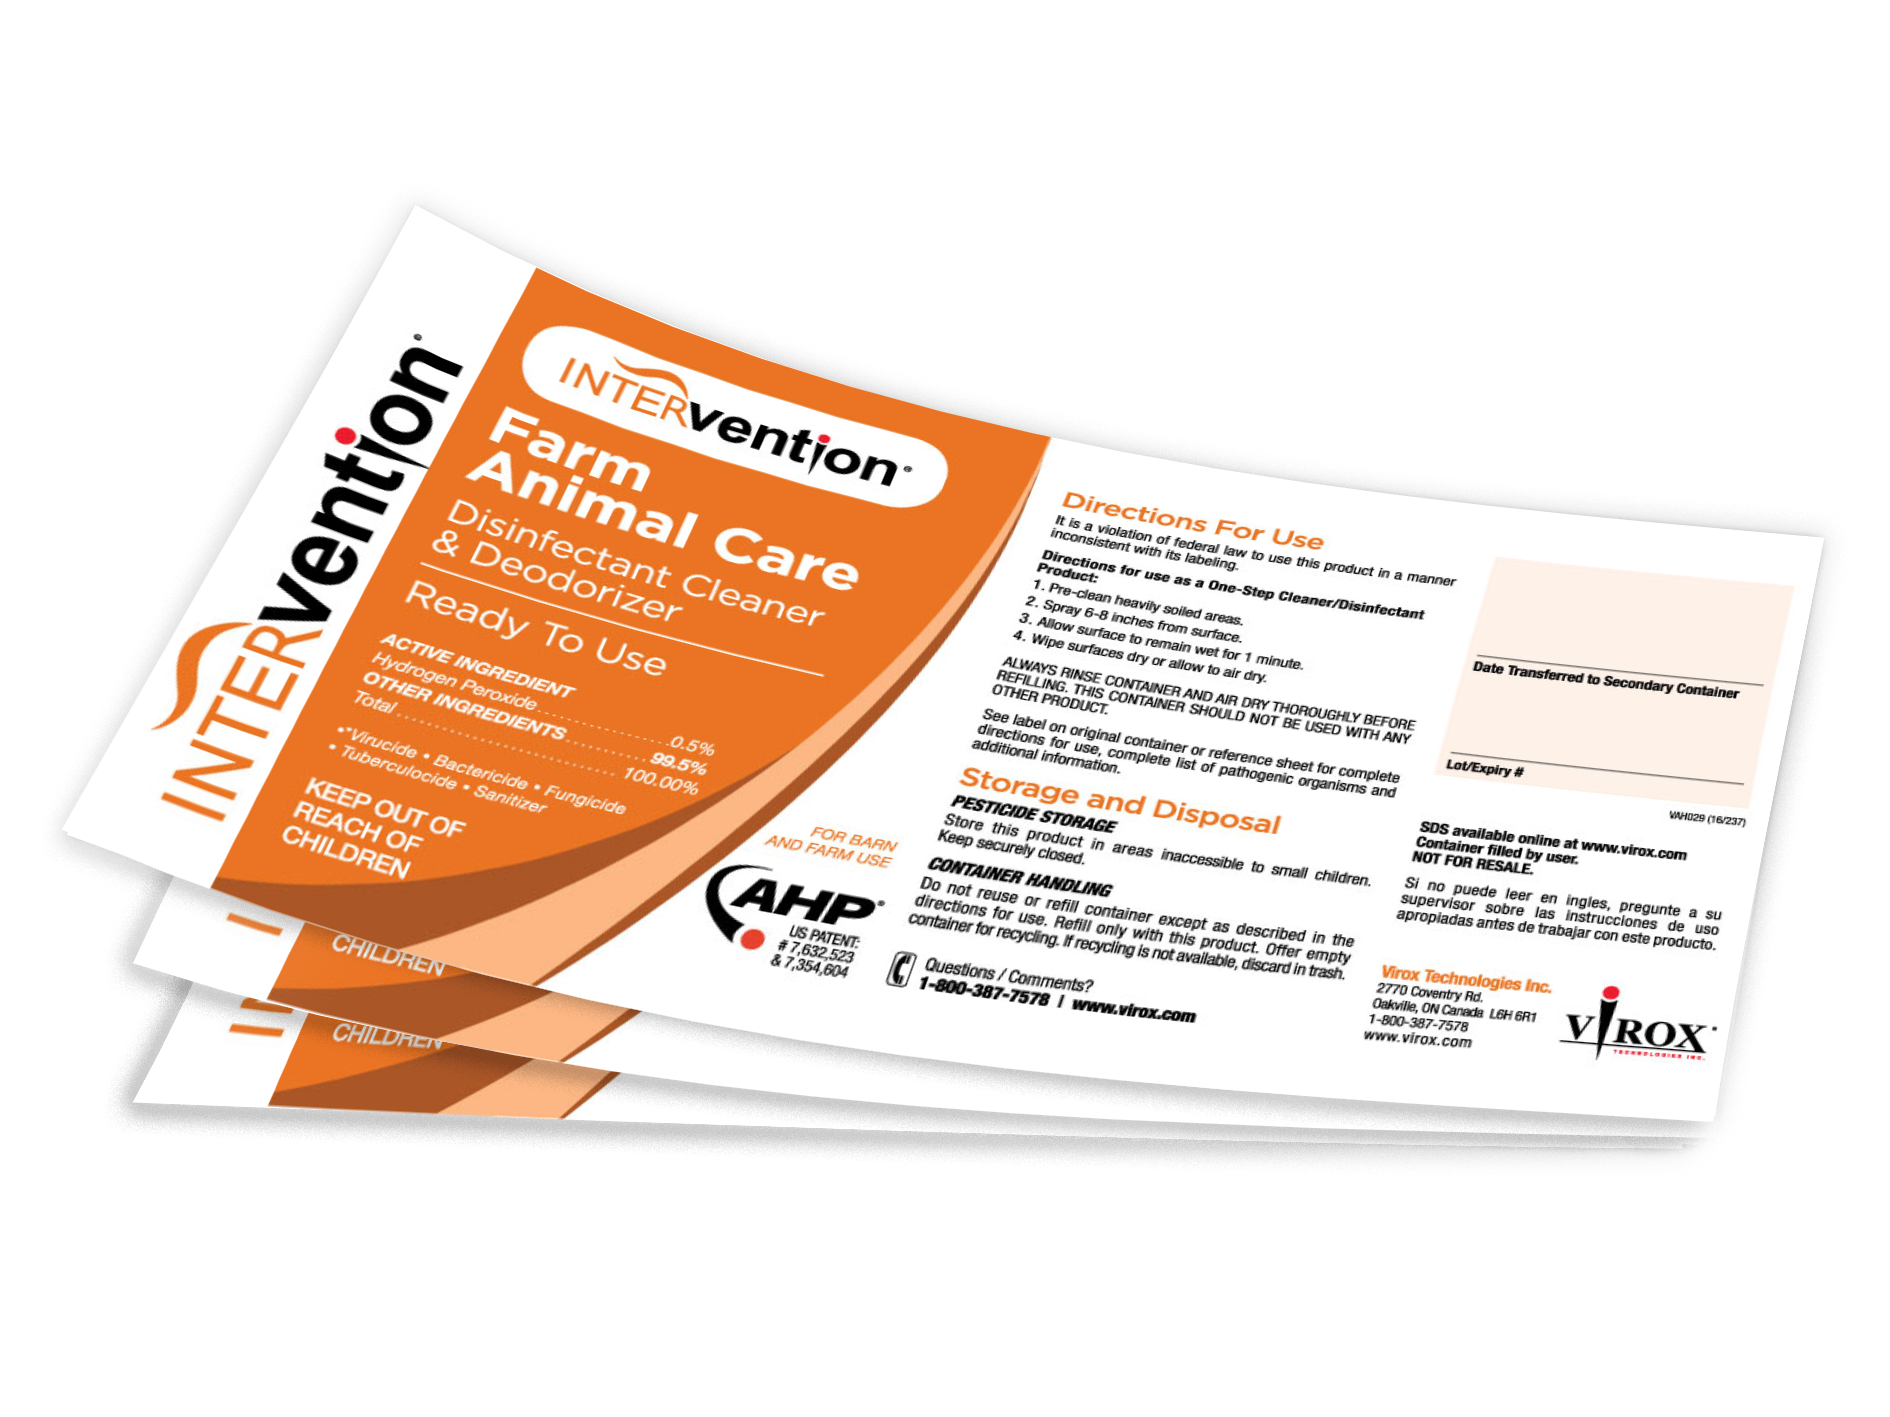 Intervention-RTU-workplace-label-product-image.png